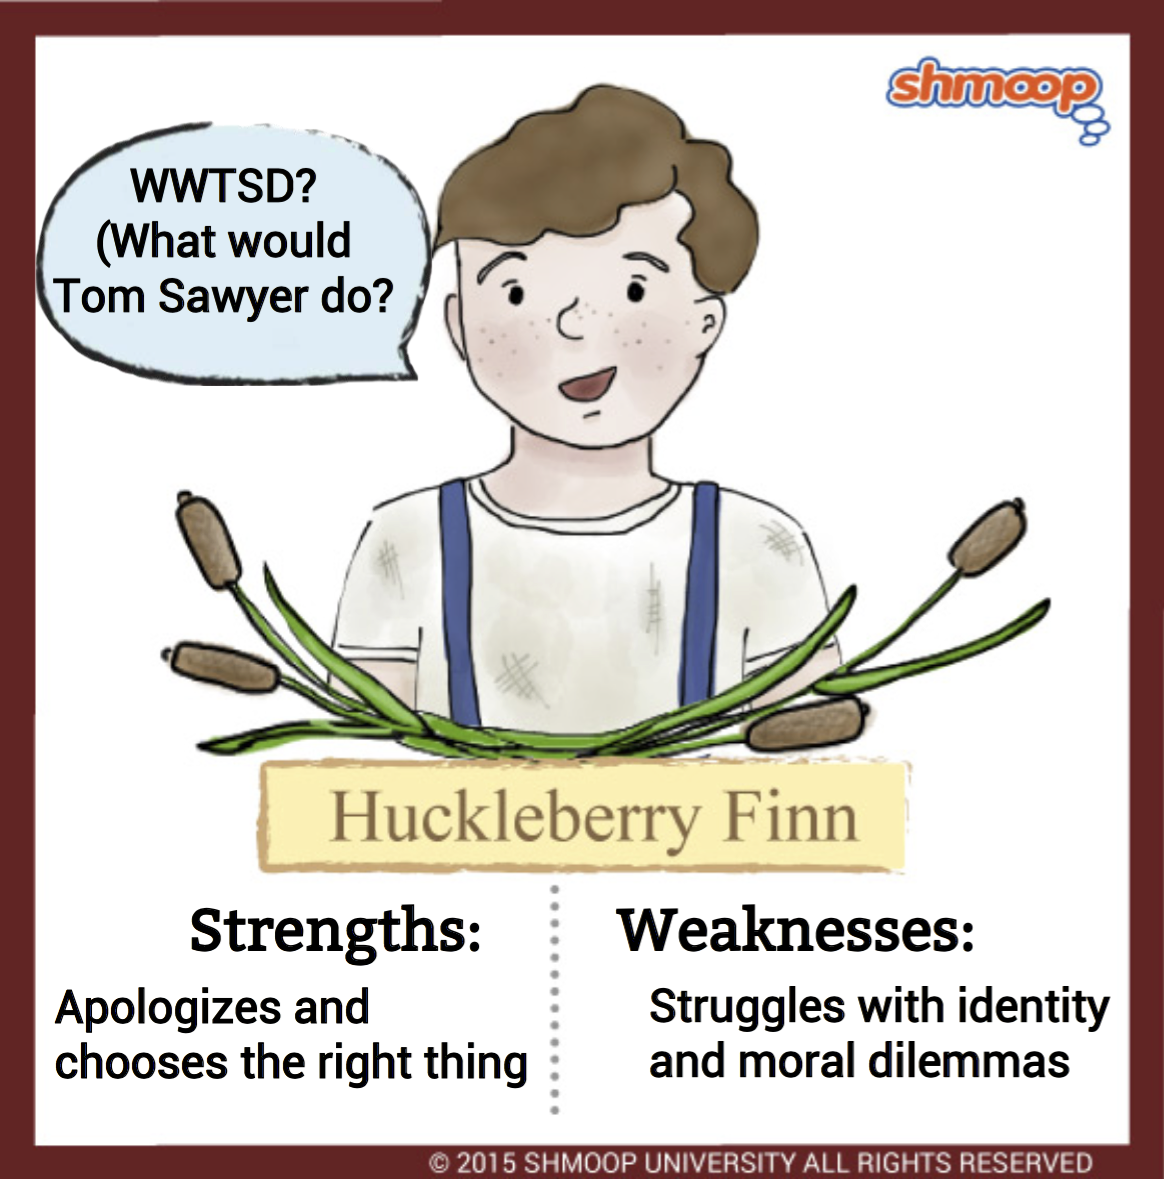 huckleberry finn 4 essay Read this free literature essay and other term papers, research papers and book reports the adventures of huckleberry finn the novel the adventures of huckleberry finn has created a lot of.